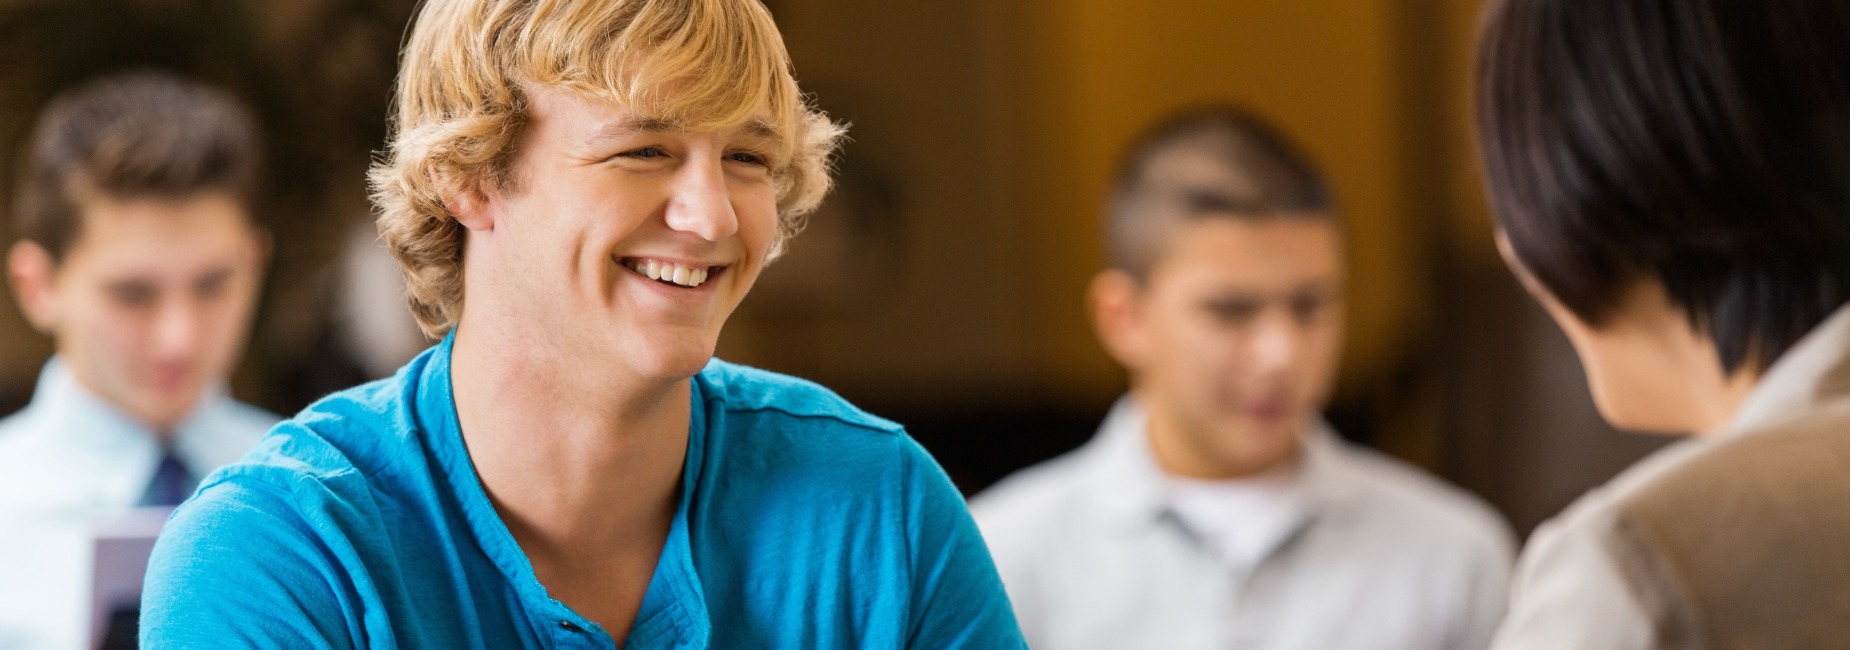 teen boy smiling at woman with her back to the camera